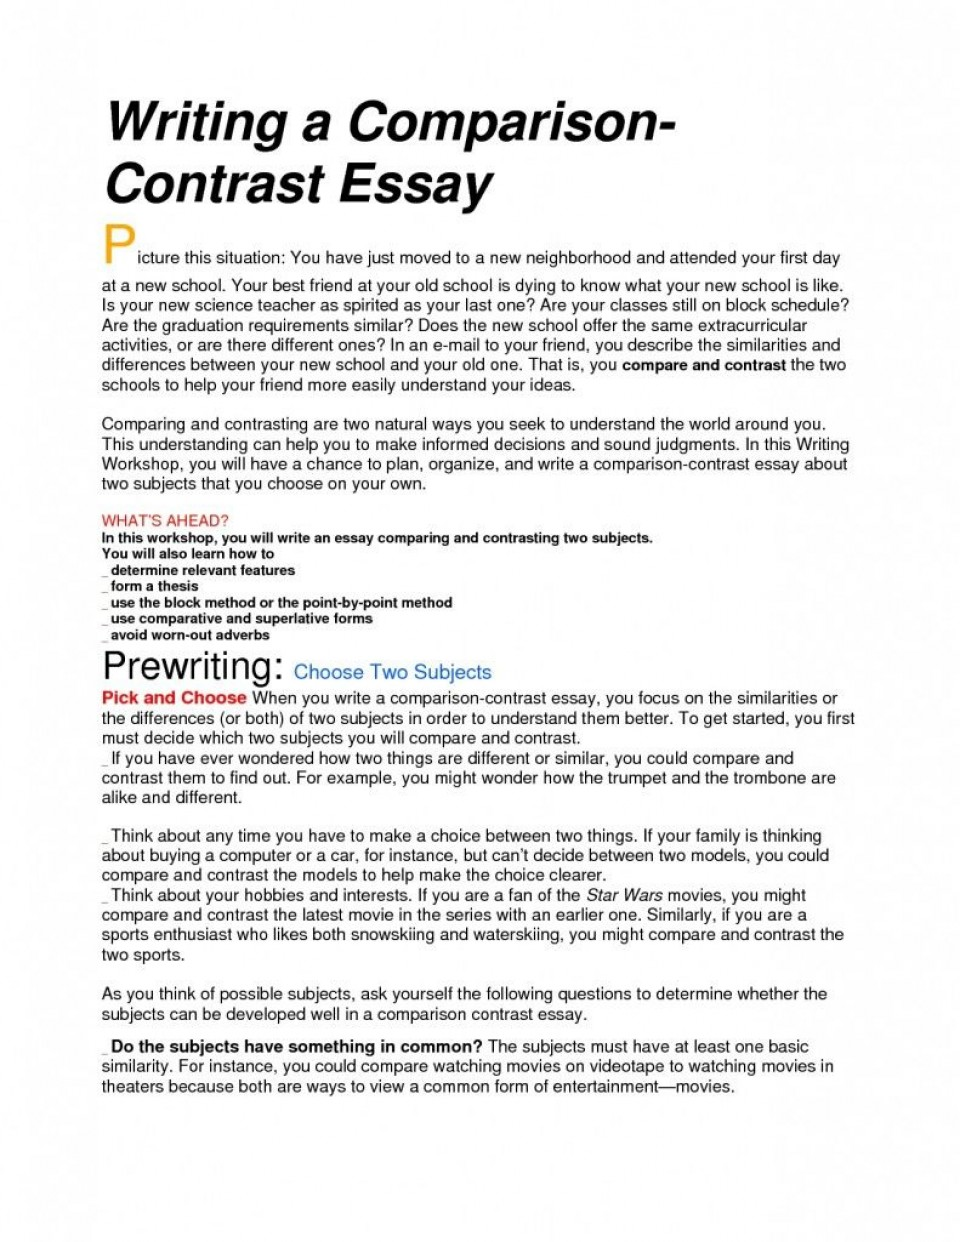 020 Literary Review Is Summary About Specific Topic In Essay Formare Contrast Examples College And High School For Students Outline Vs Pdf Free Level Example Striking Compare 7th Grade Comparison Elementary 960